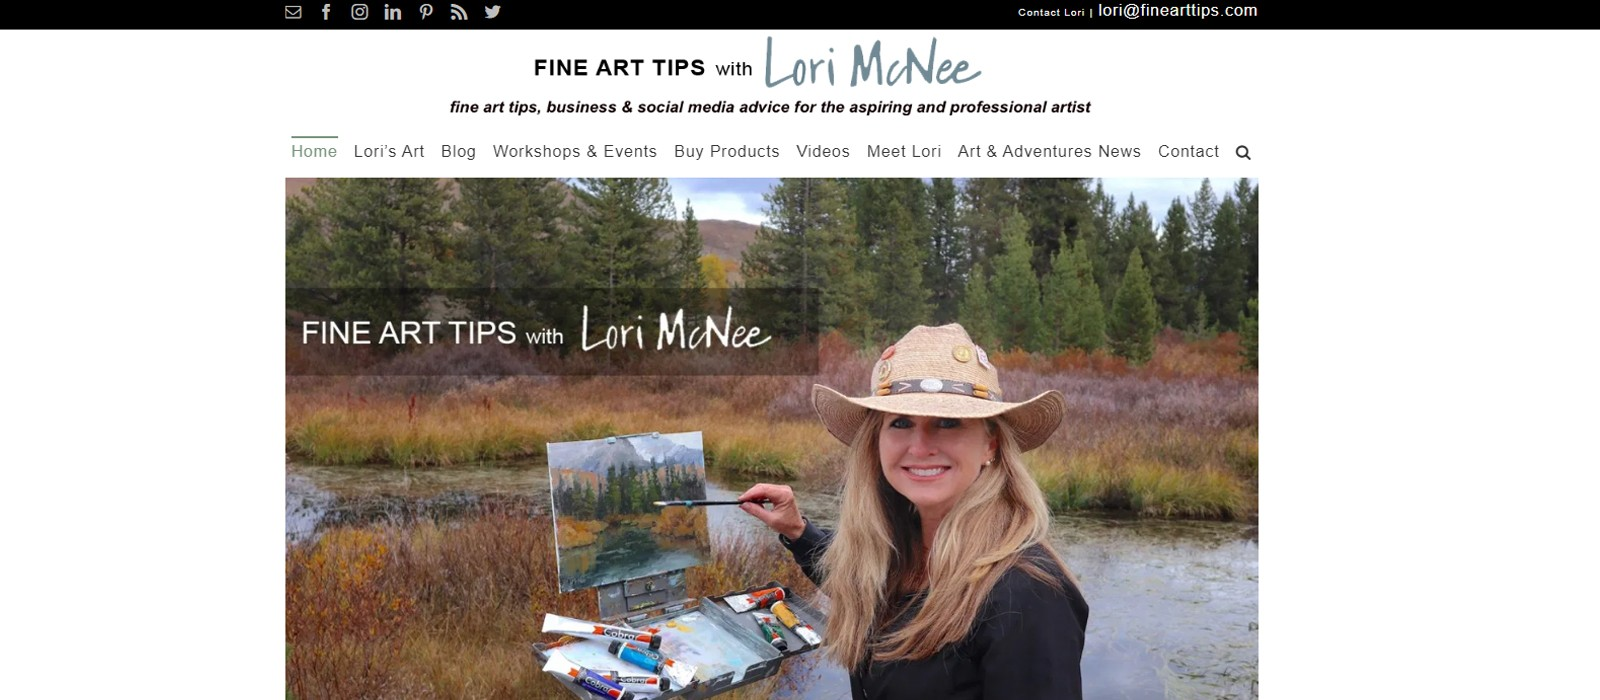 Fine Art Tips – Lori McNee